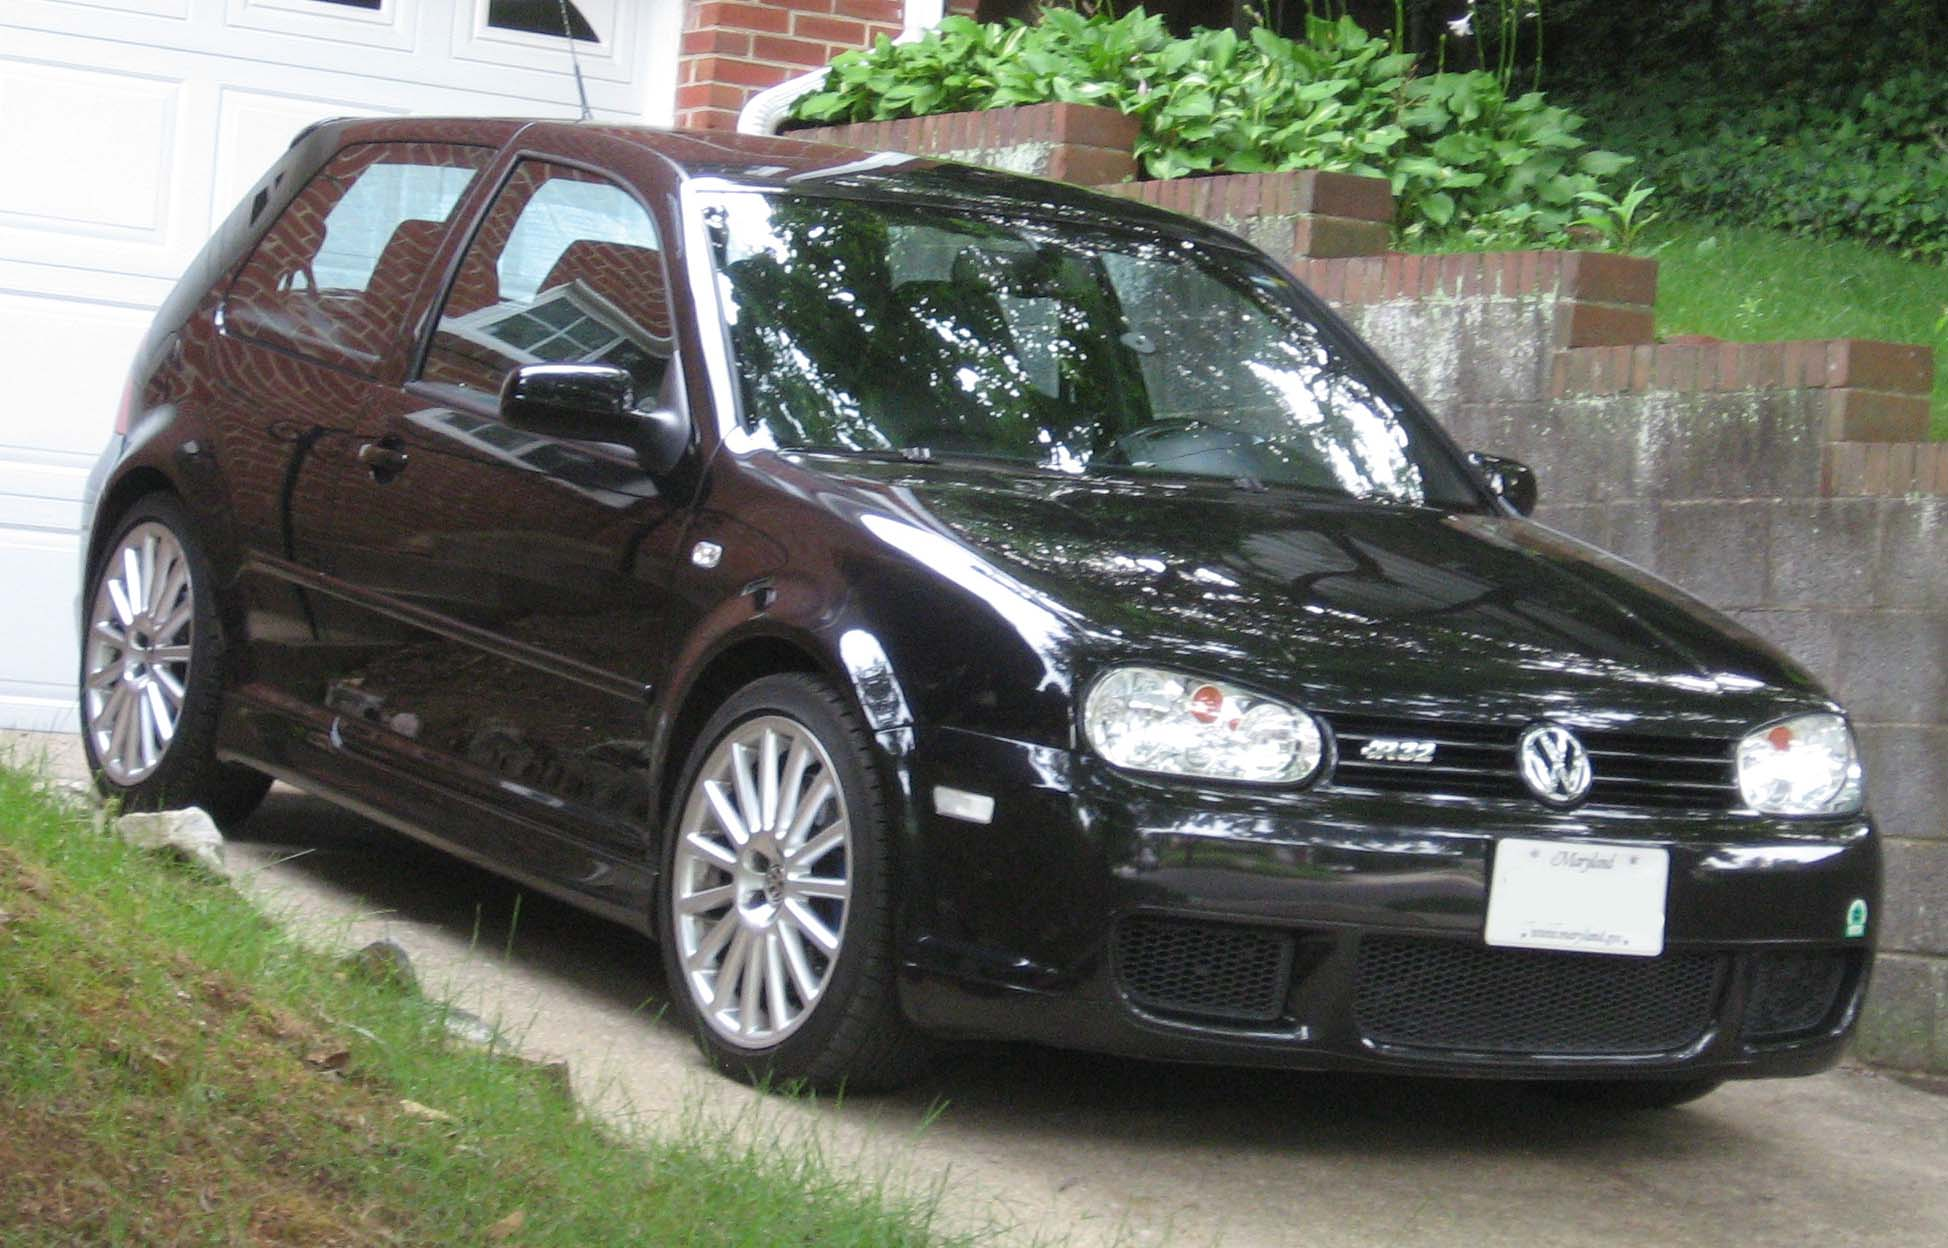 file volkswagen golf wikimedia commons. Black Bedroom Furniture Sets. Home Design Ideas